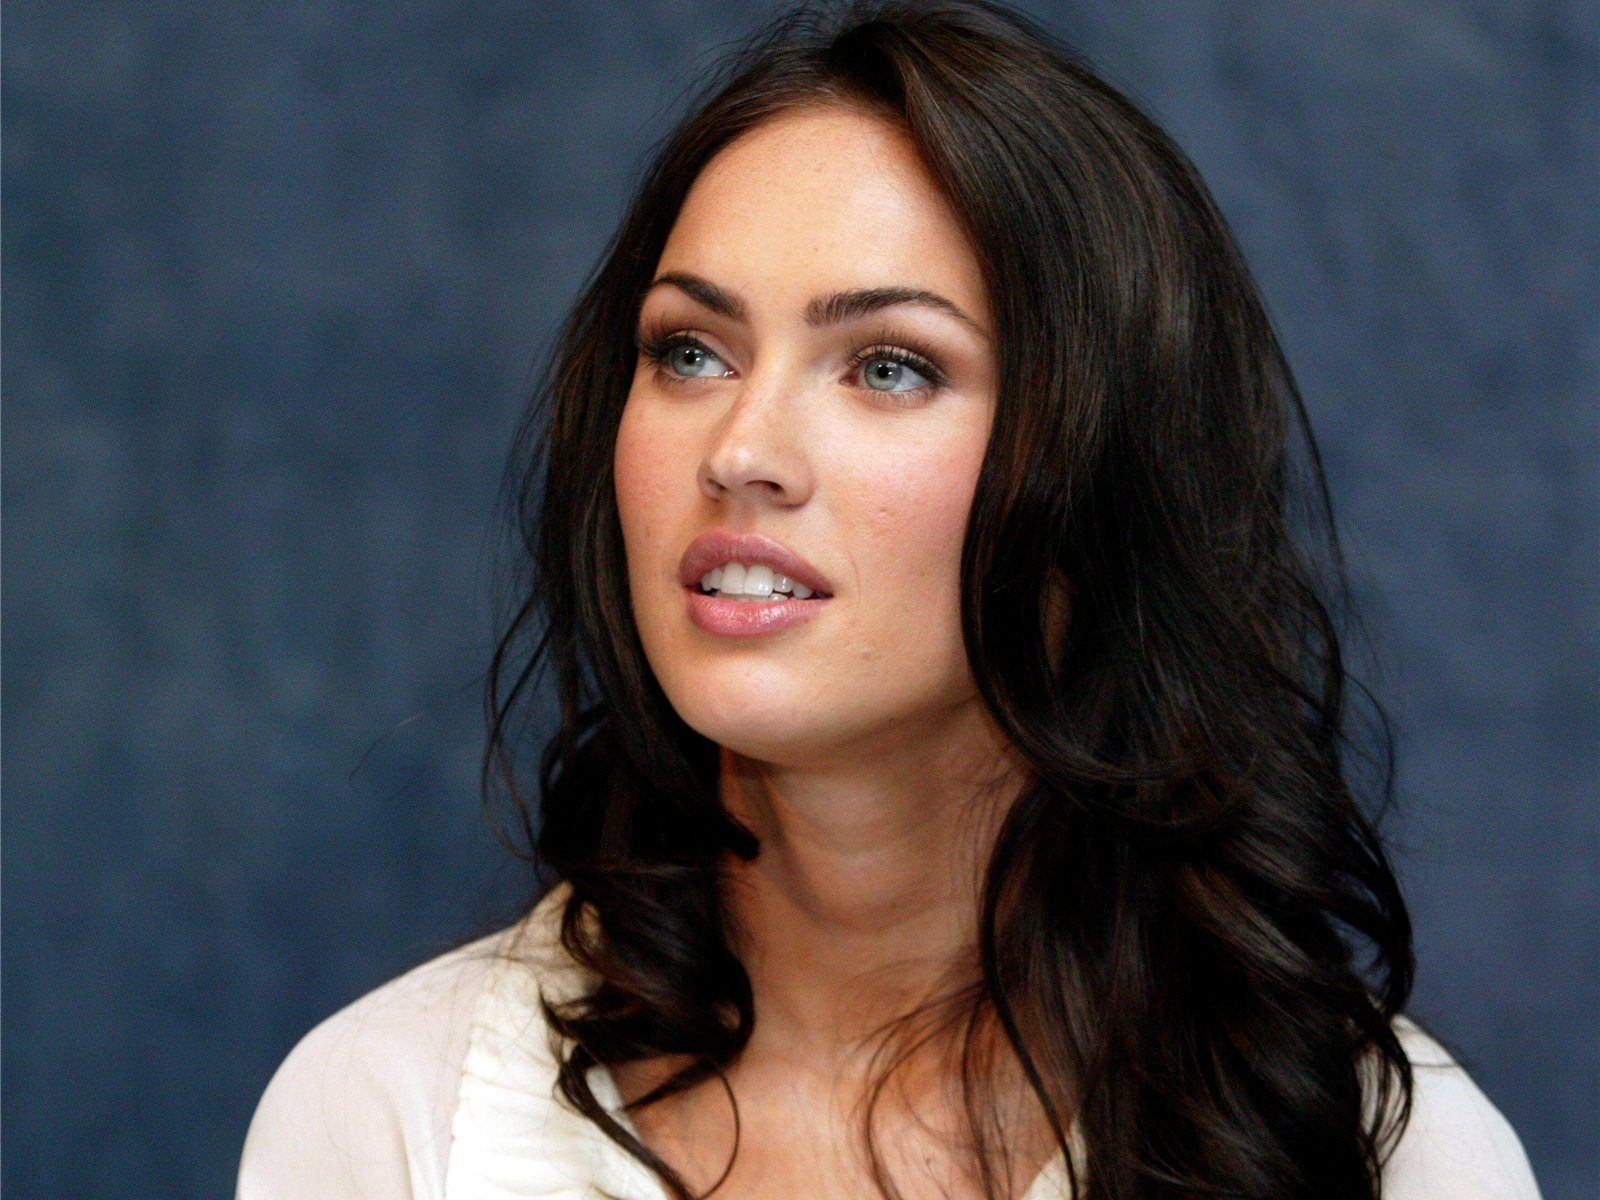 Jasmine Waltz la doble de Megan Fox ha cautivado a todos